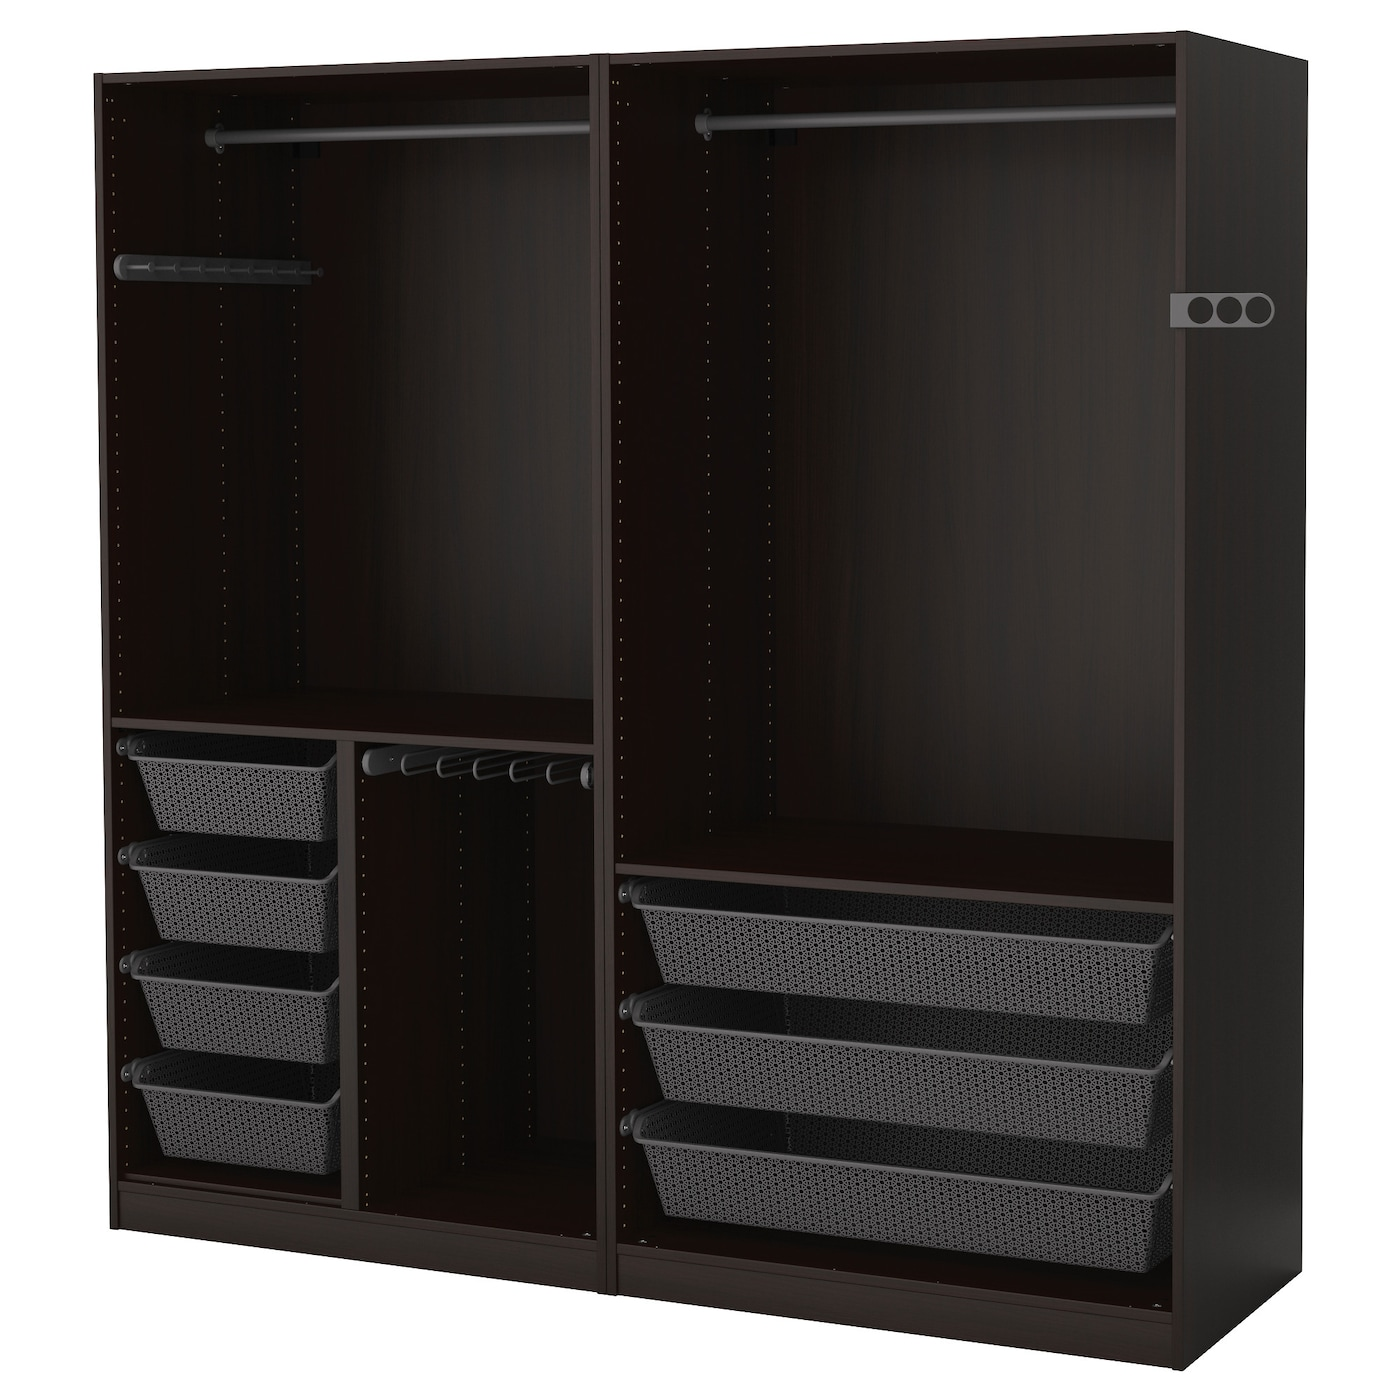 pax armoire penderie brun noir 200 x 58 x 201 cm ikea. Black Bedroom Furniture Sets. Home Design Ideas